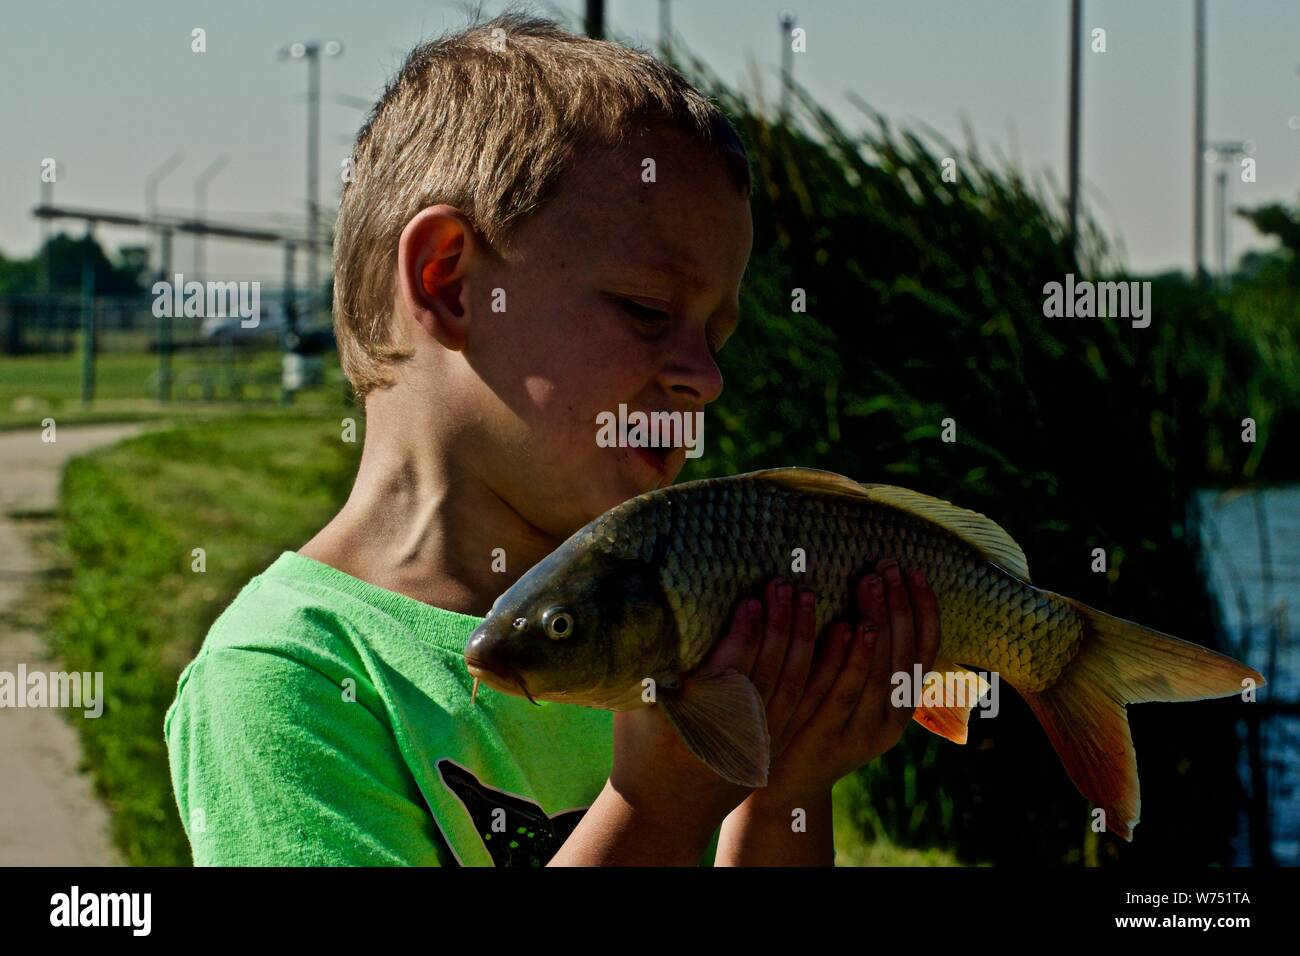 My Grandson, Connor with his First Fish, River Carp, Lindsey Park Public Fishing Lake, Canyon, Texas. Stock Photo